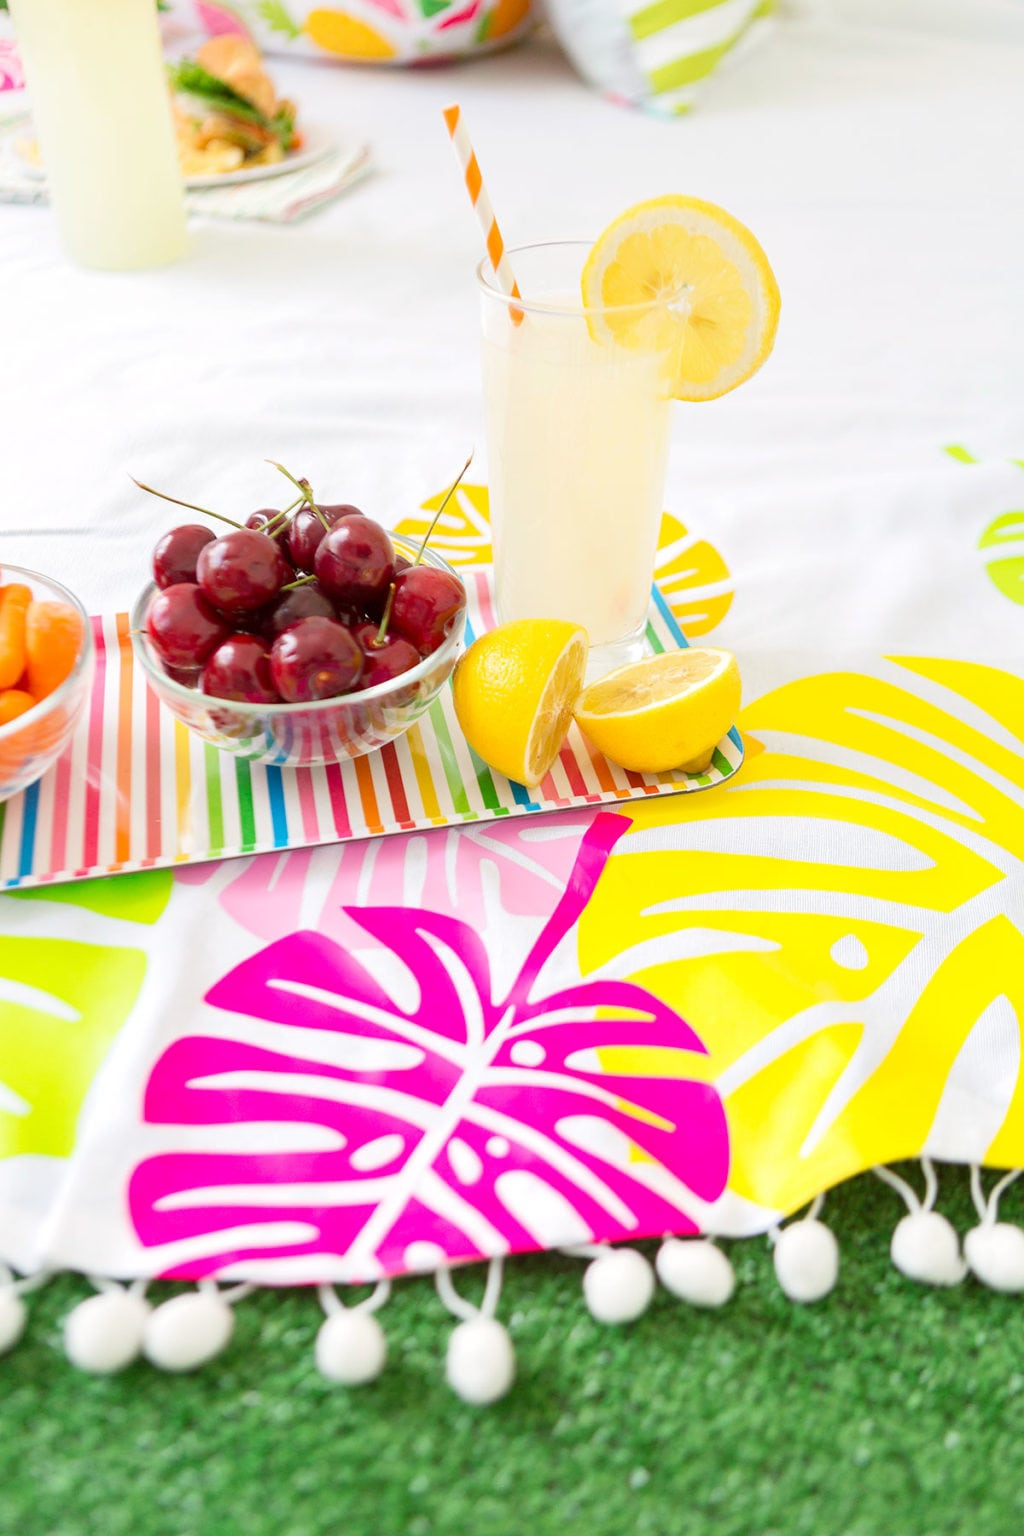 Use your Cricut Explore to create this Cricut Iron-On Picnic Blanket featuring bold colors and on-trend